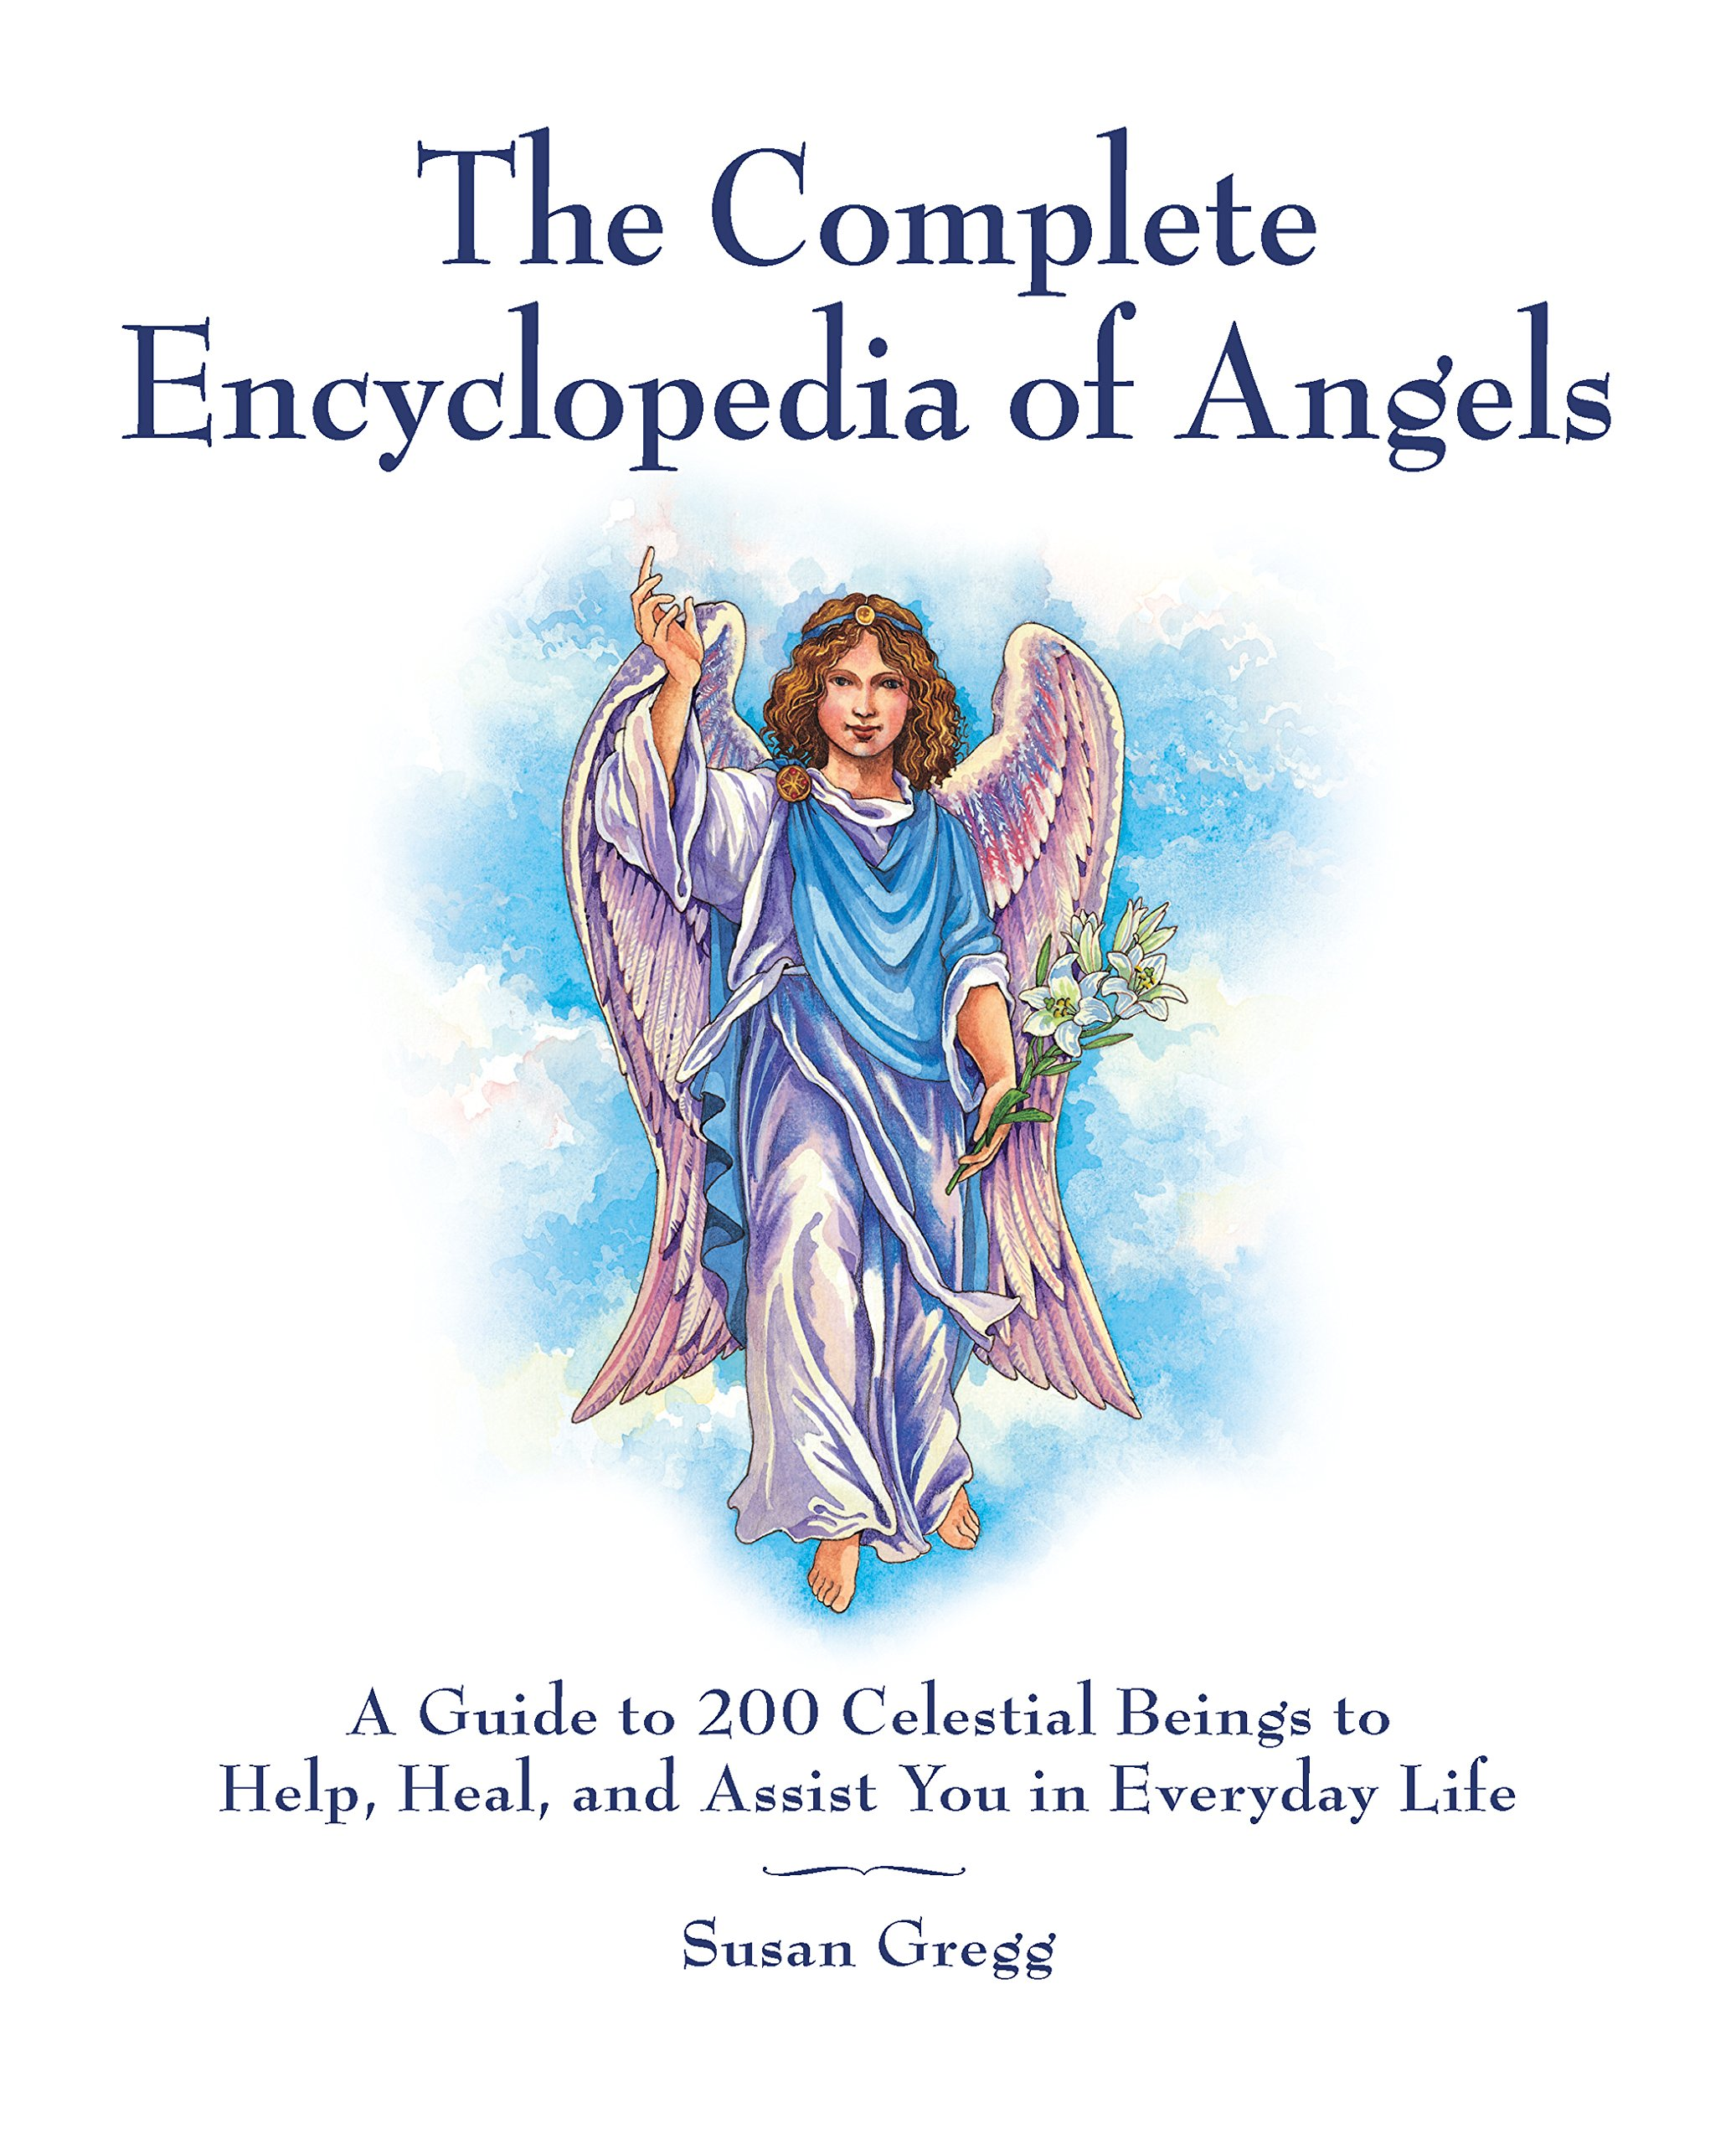 The Complete Encyclopedia of Angels: A Guide to 200